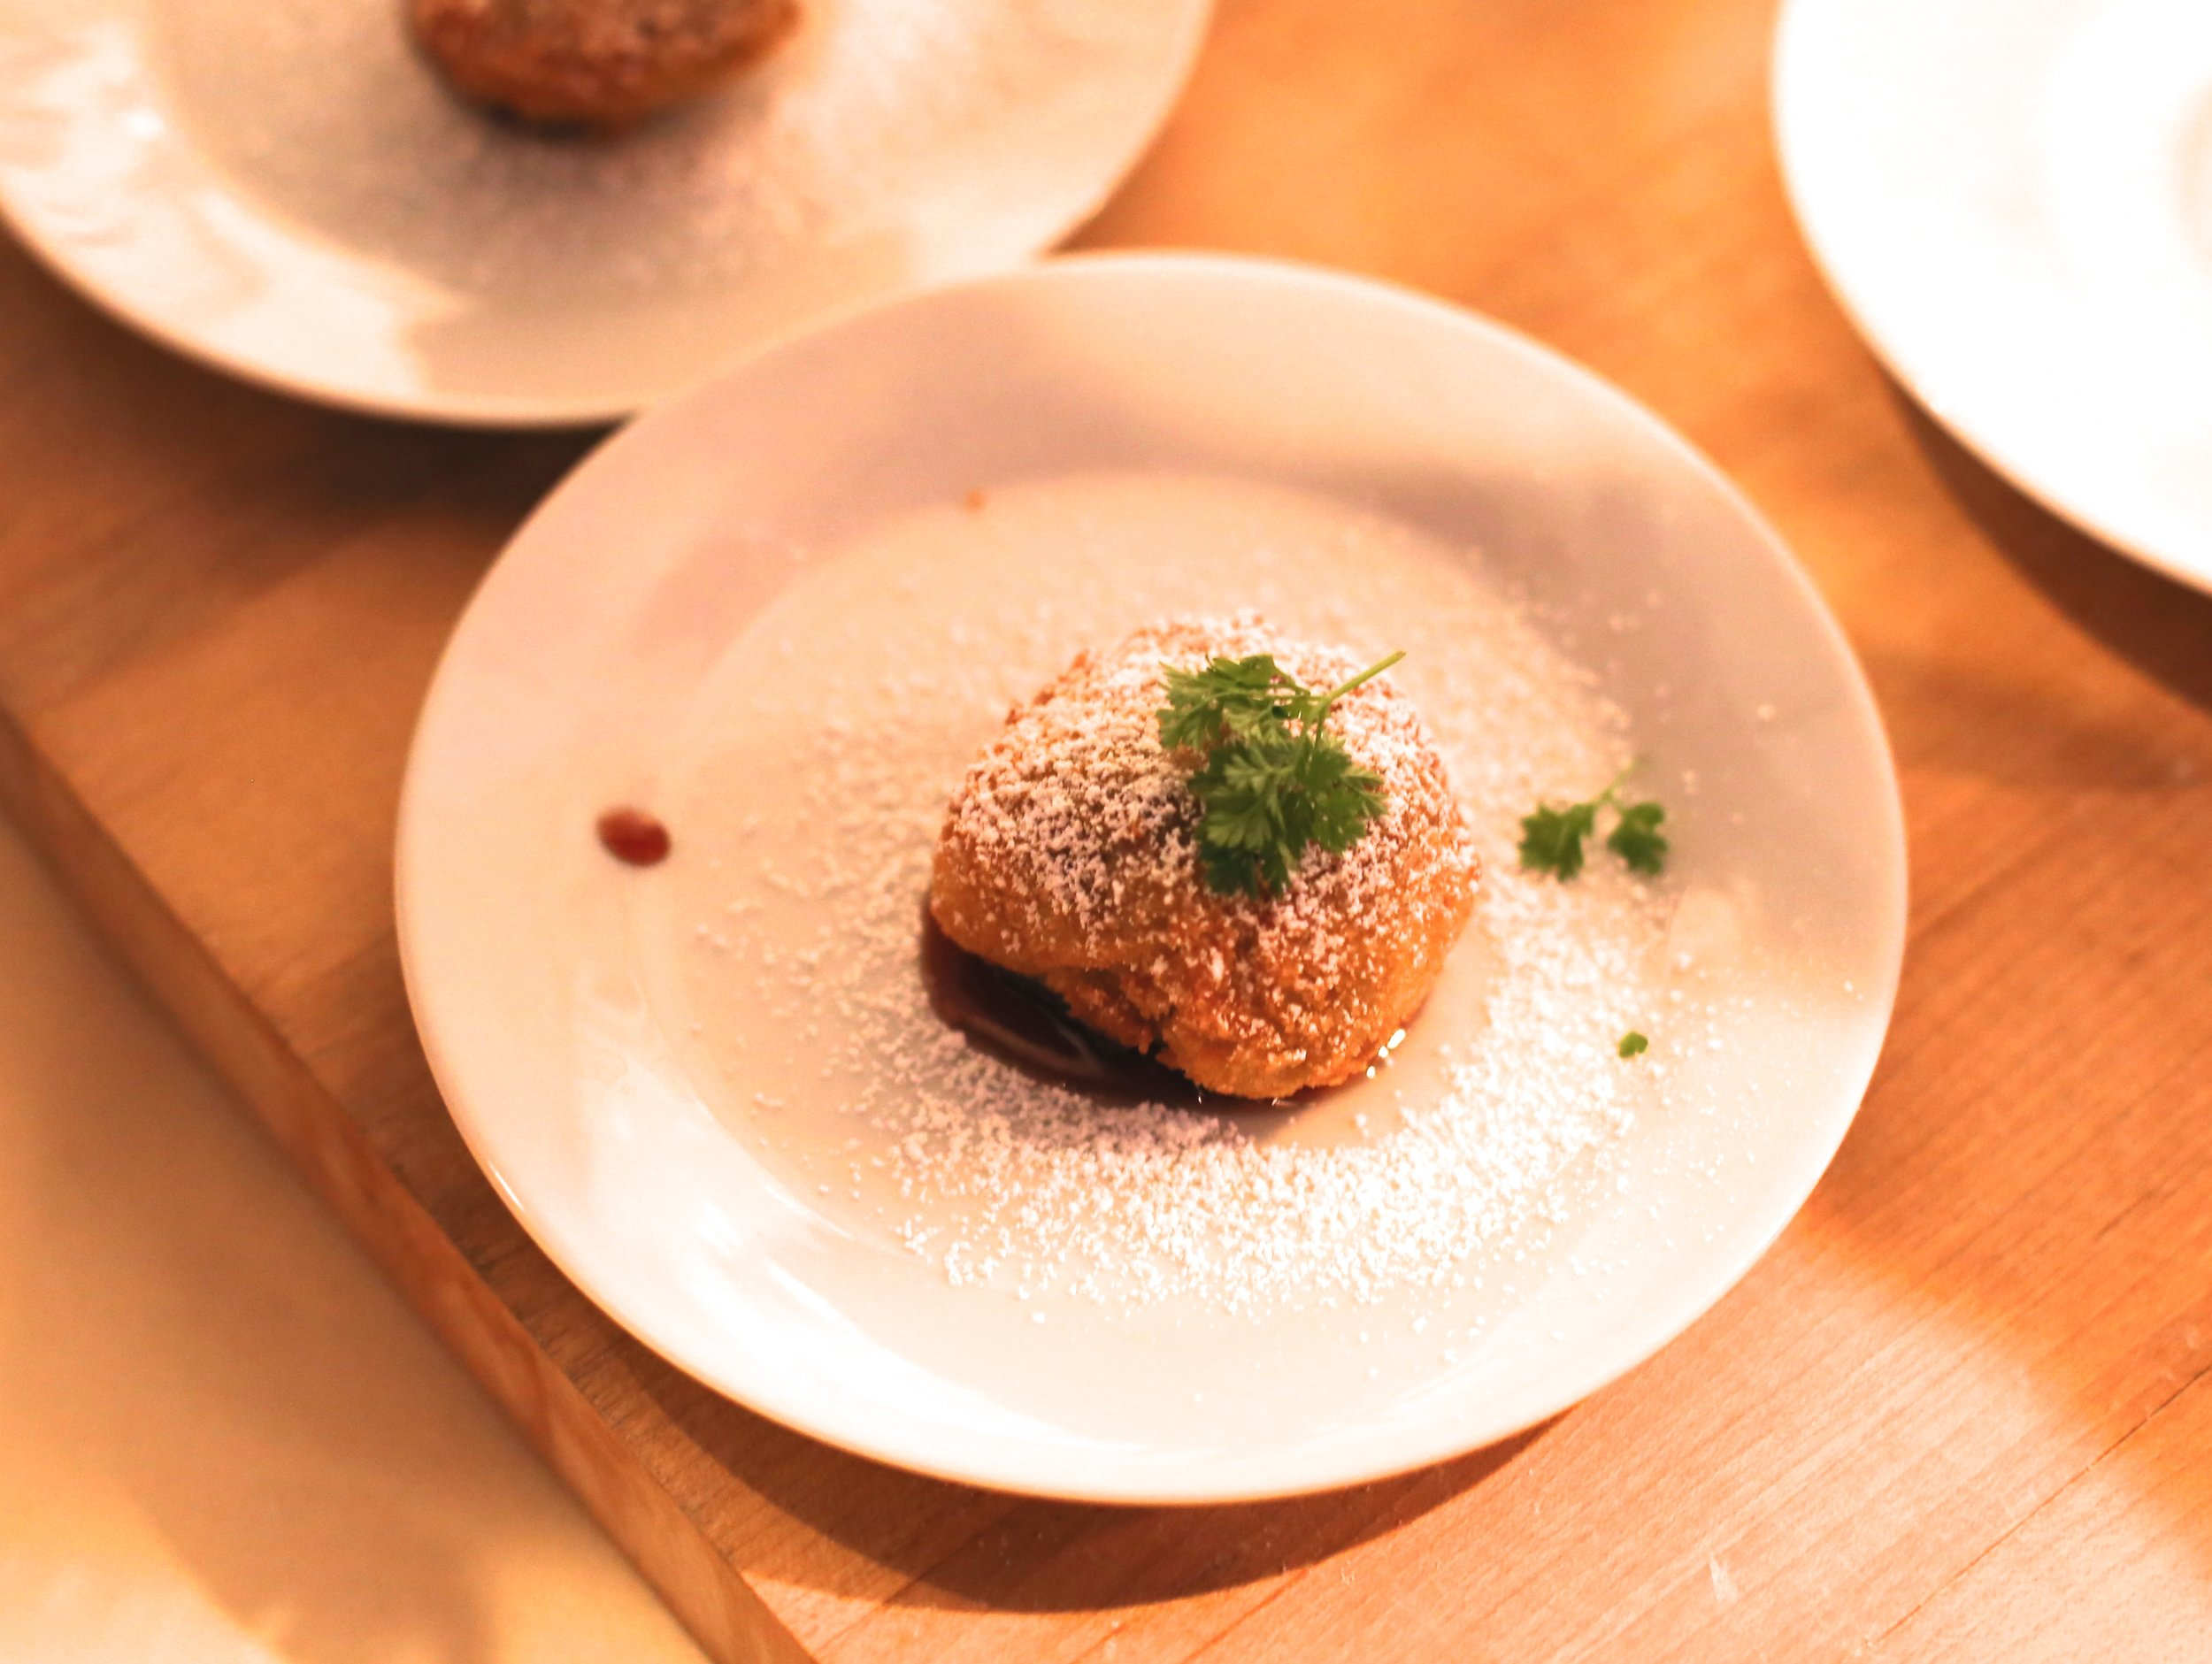 Deep fried foie gras croquettes with powdered chocolate, brandied cherries & black truffle. Chef Jason Paskewitz. The Blanchard. Chicago.